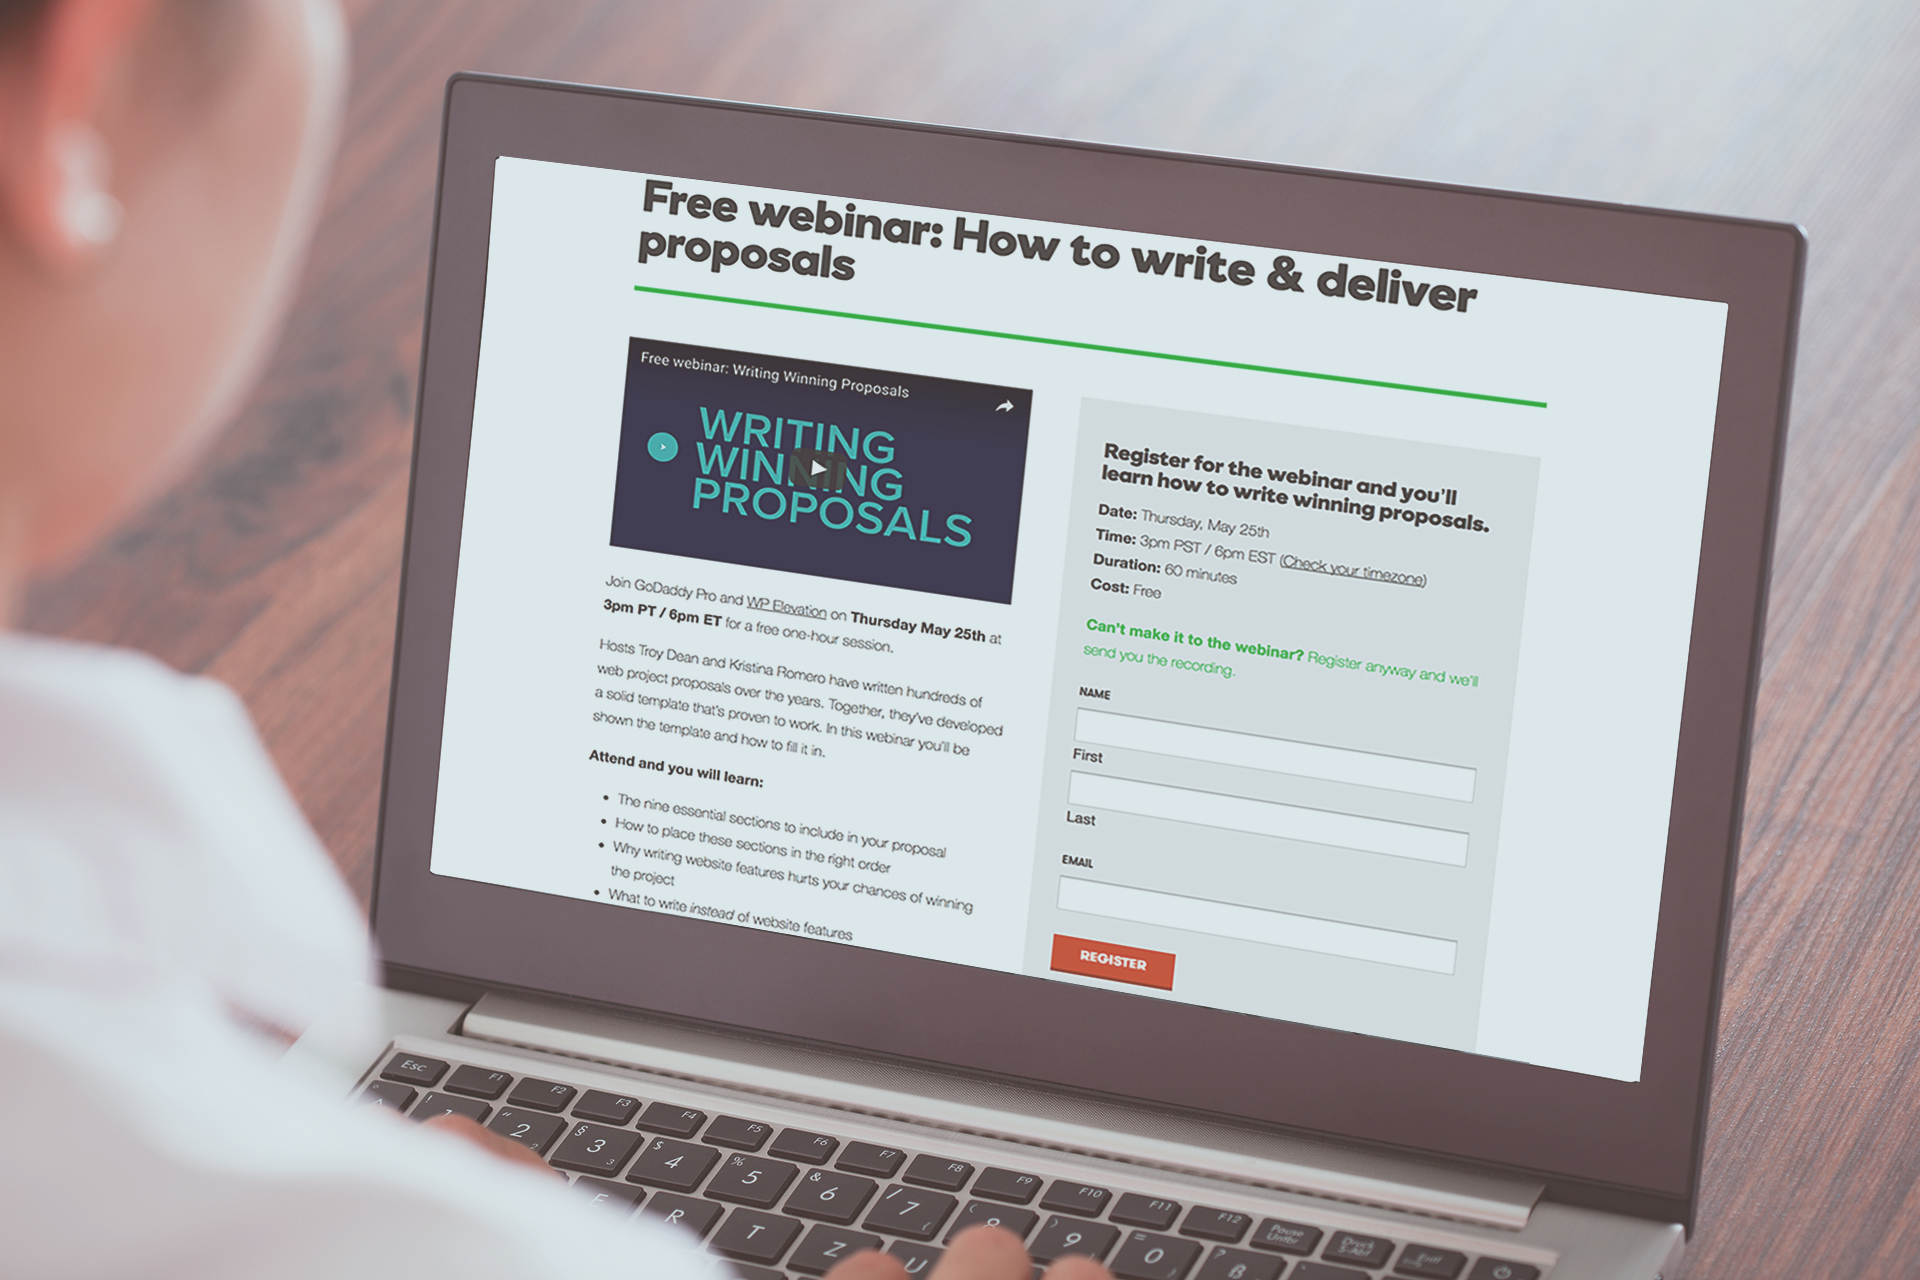 How to write & deliver proposals